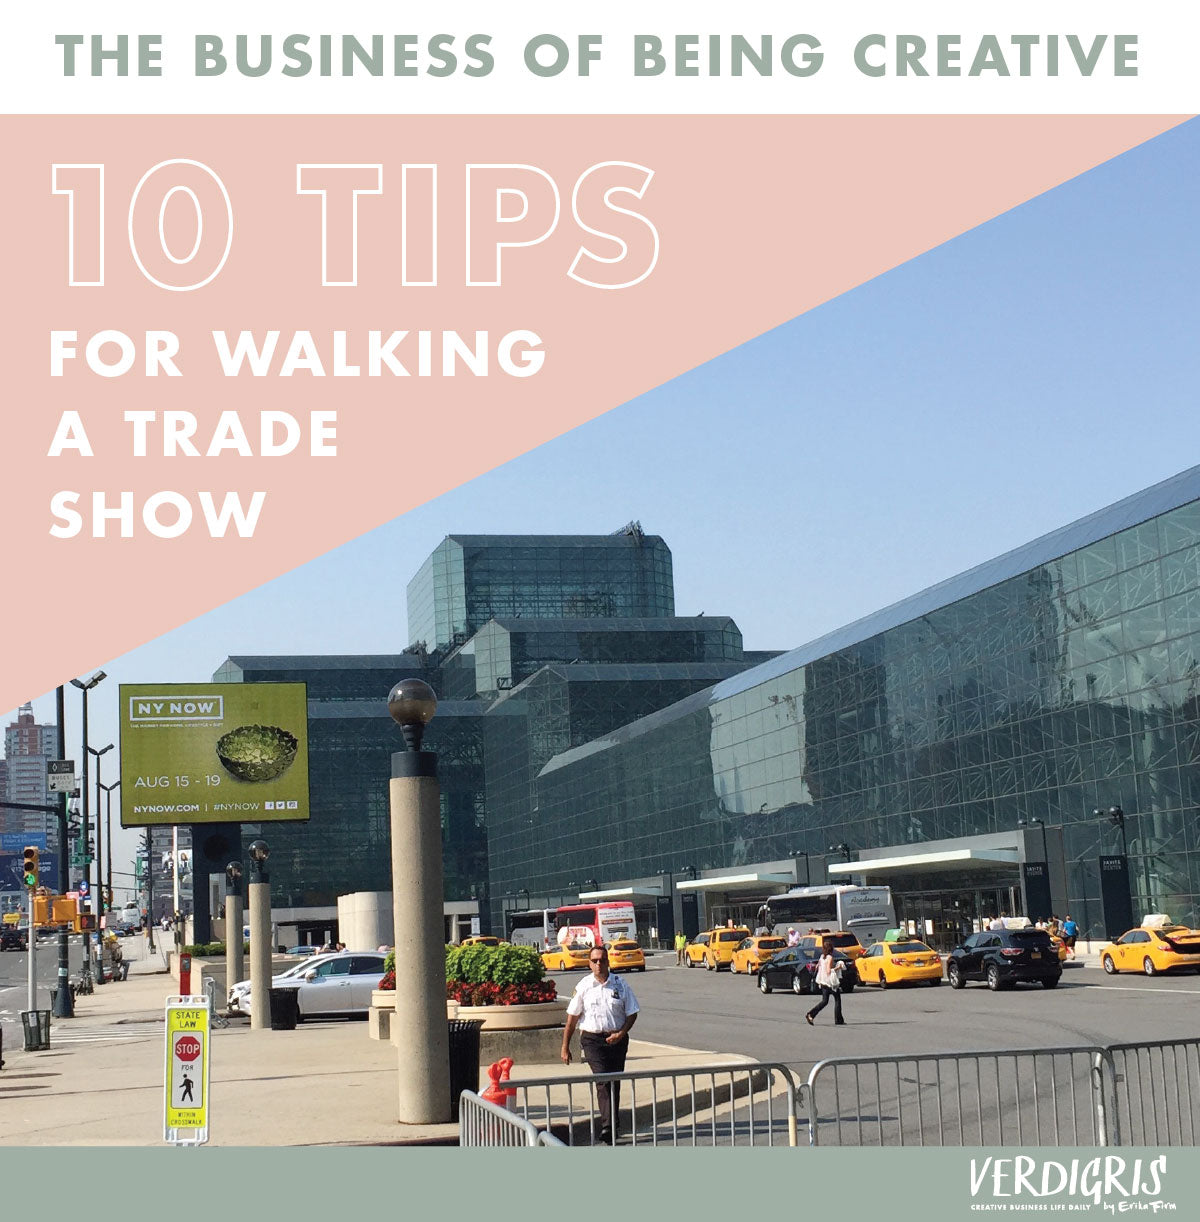 Creative Business 10 Tips for Walking a Trade Show